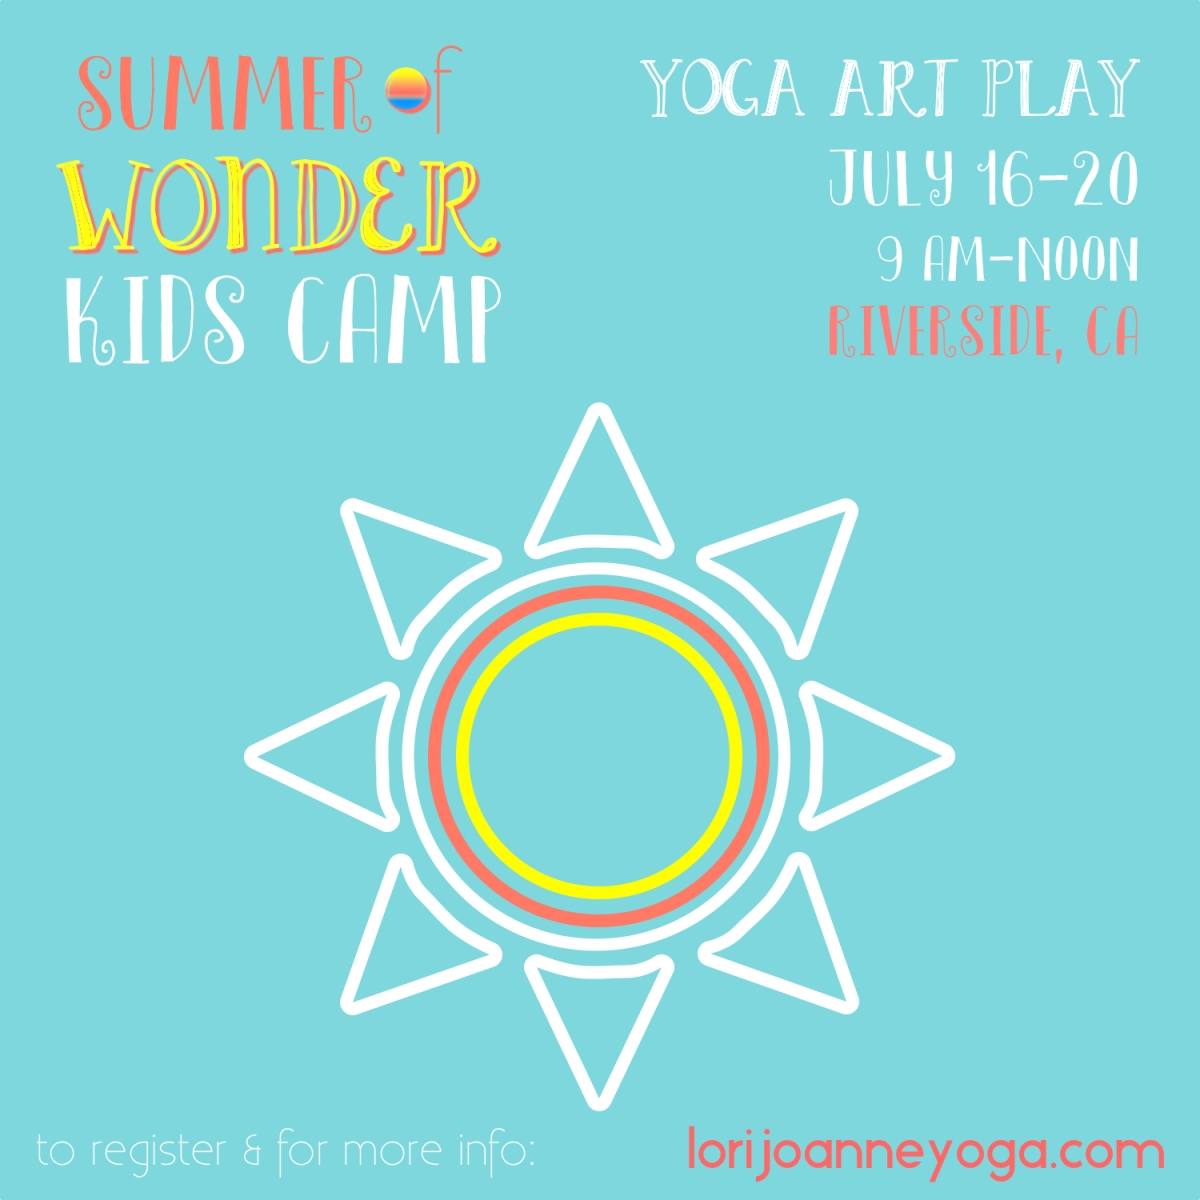 Summer of Wonder! Kids Yoga, Art, & Play Camp